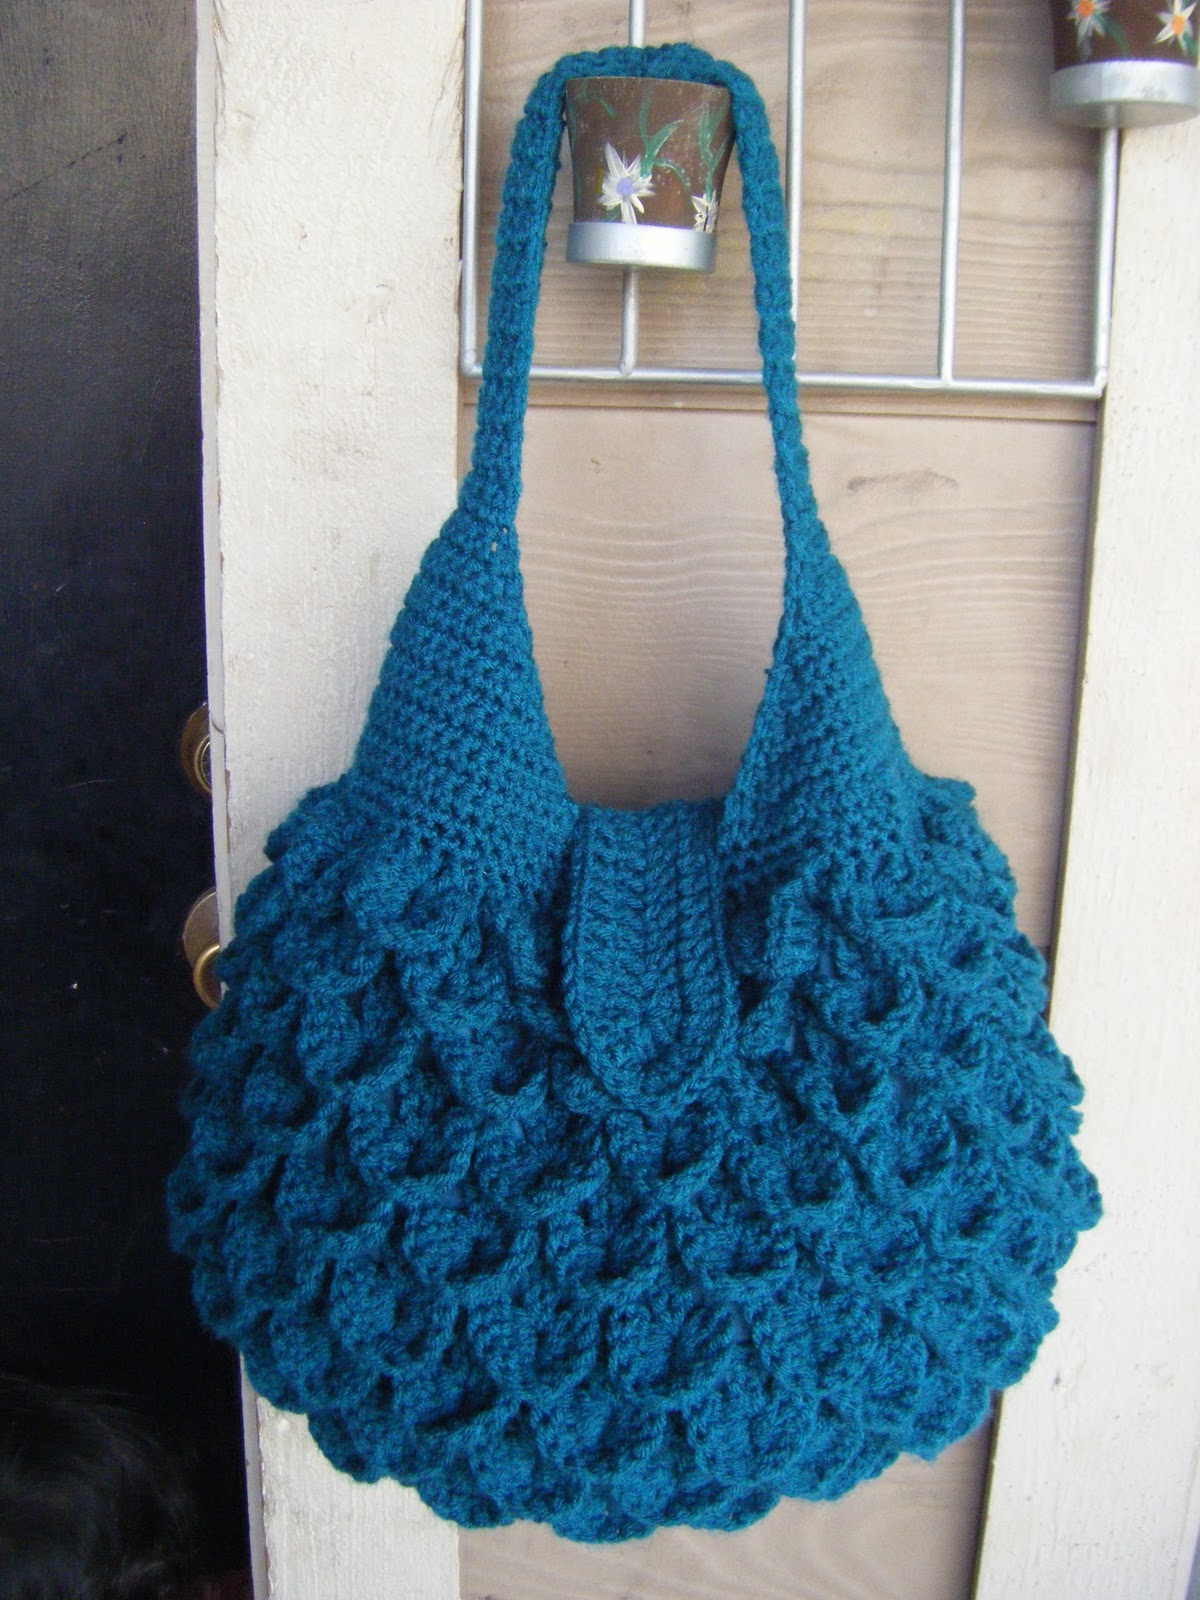 Crochet Patterns Purses : FREE THREAD CROCHET PURSE PATTERNS - Easy Crochet Patterns